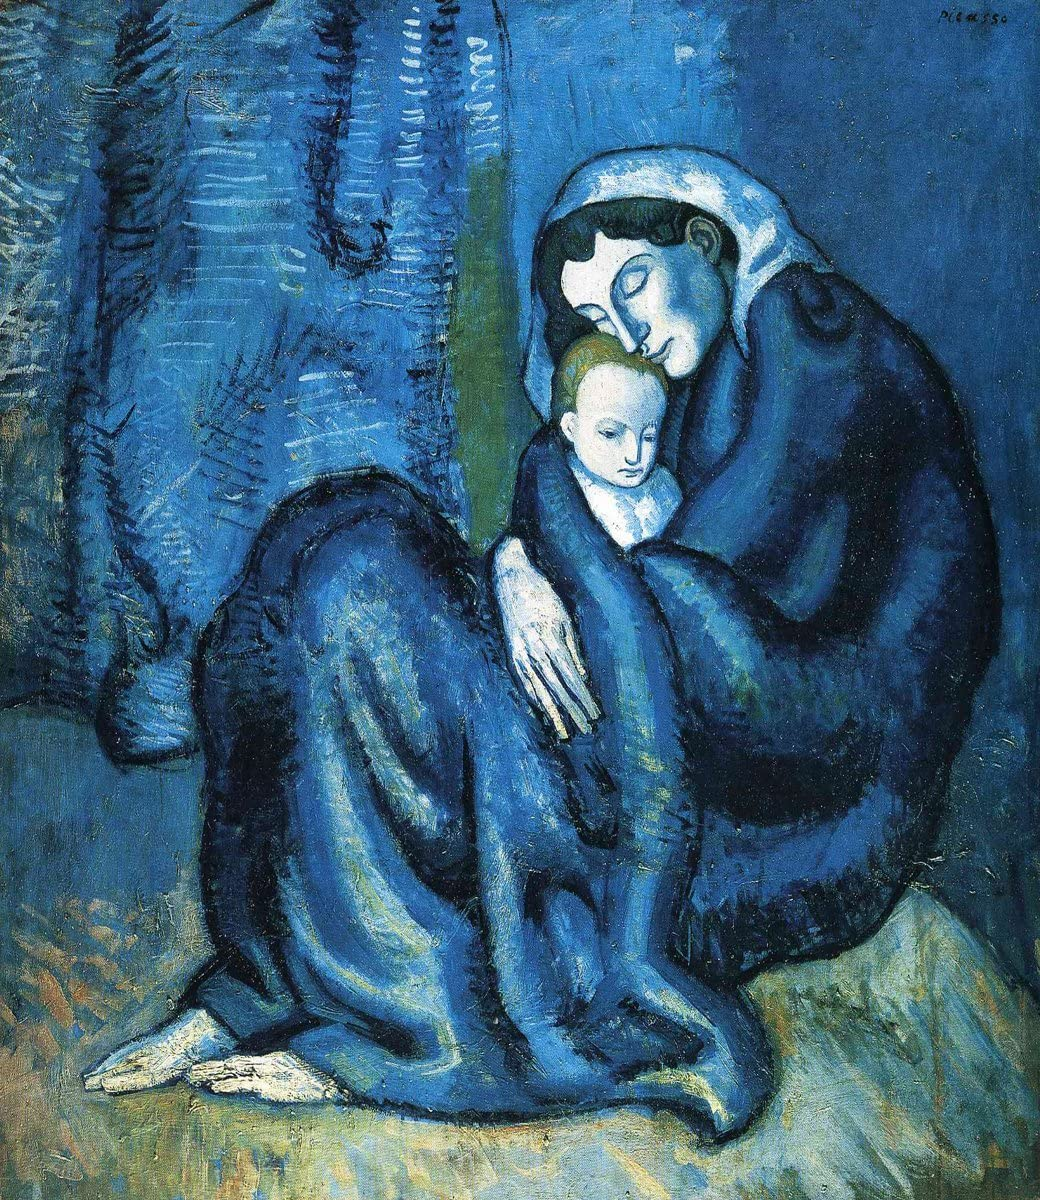 Amazon Com Pablo Picasso Mother And Child Size 20x24 Inch Canvas Art Print Wall Décor Posters Prints